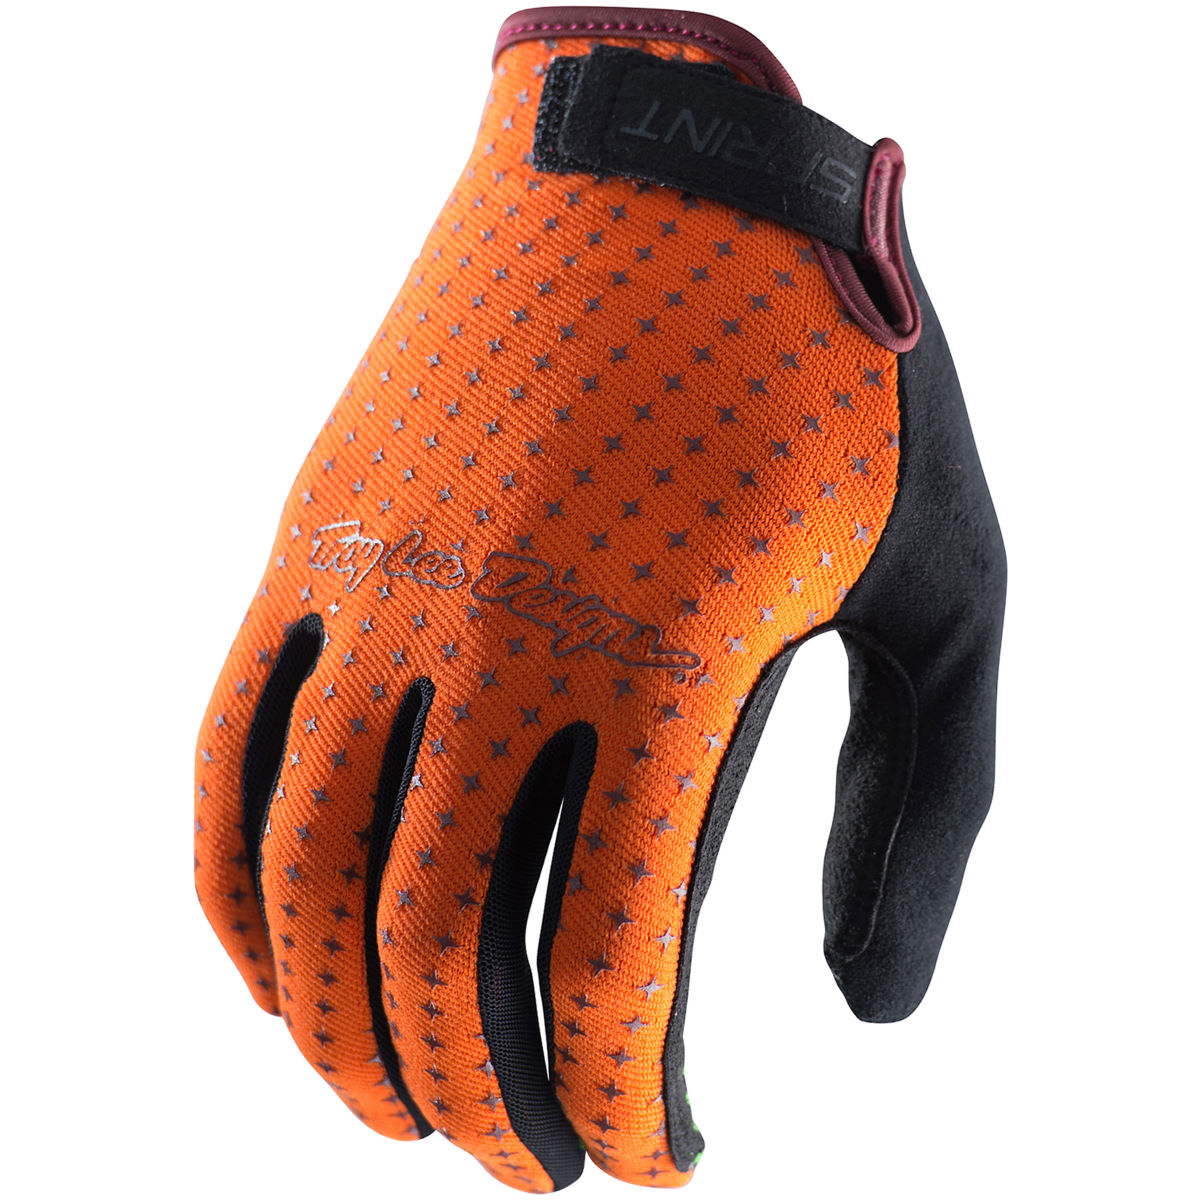 Gants Troy Lee Designs Sprint - XXL Orange Gants